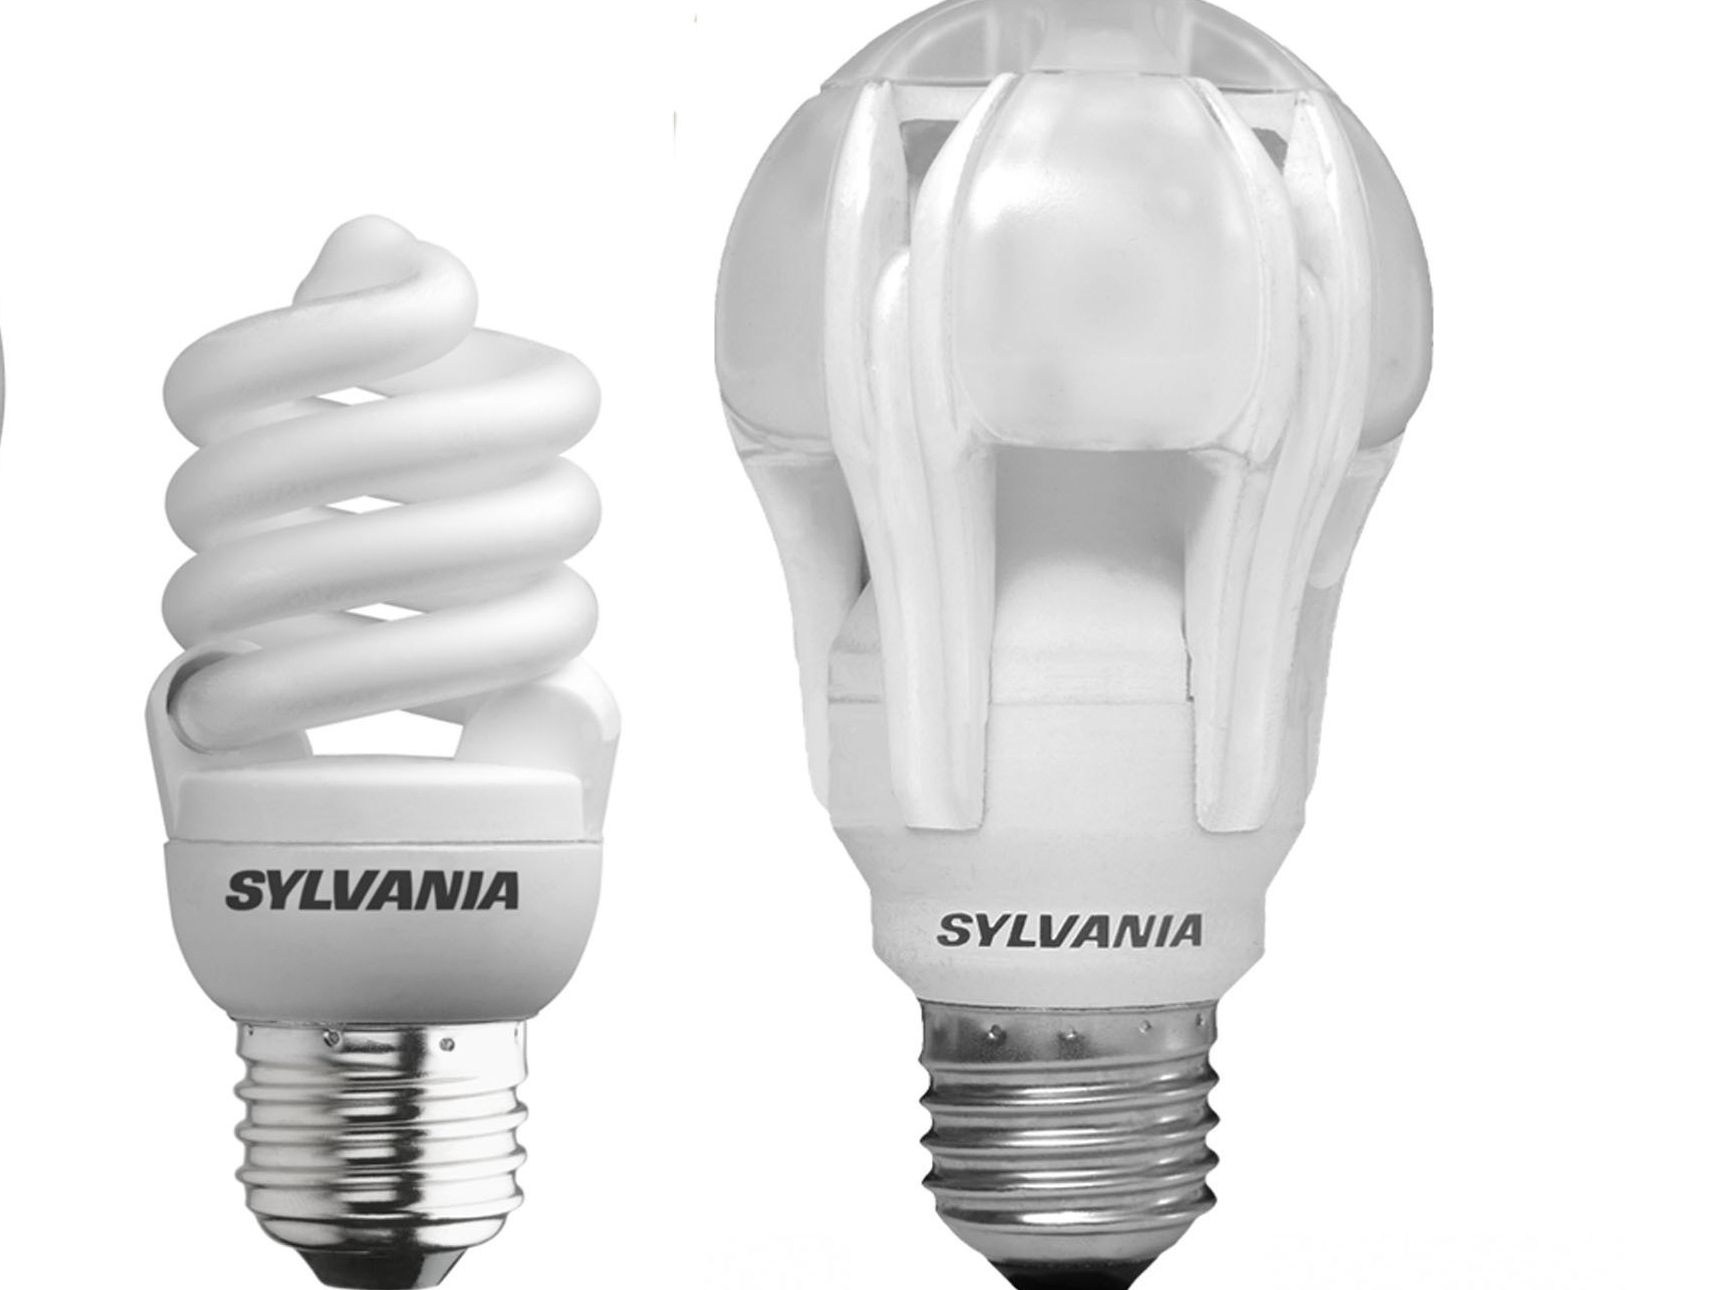 Energy Efficient Lightbulbs May Have Dark Side When It Comes To Health Light Bulb Energy Efficiency Light Emitting Diode